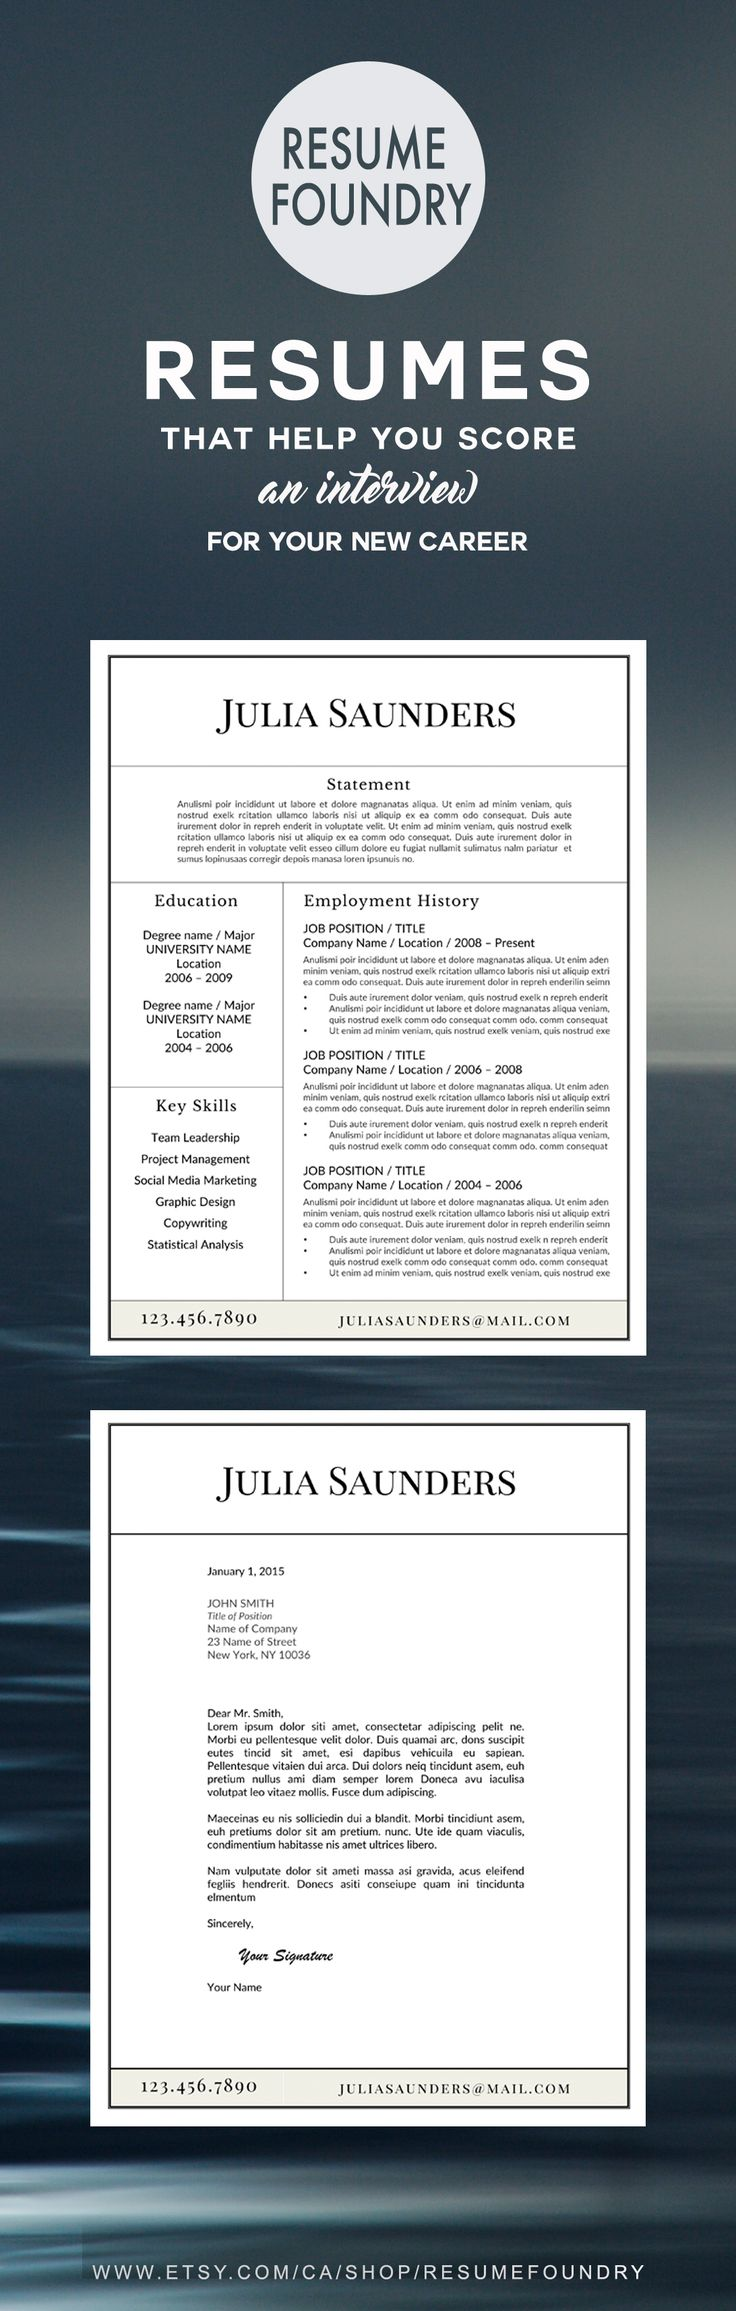 Functional Resume Template Microsoft%0A Professionally designed resume template  For use with Microsoft Word   Includes      or